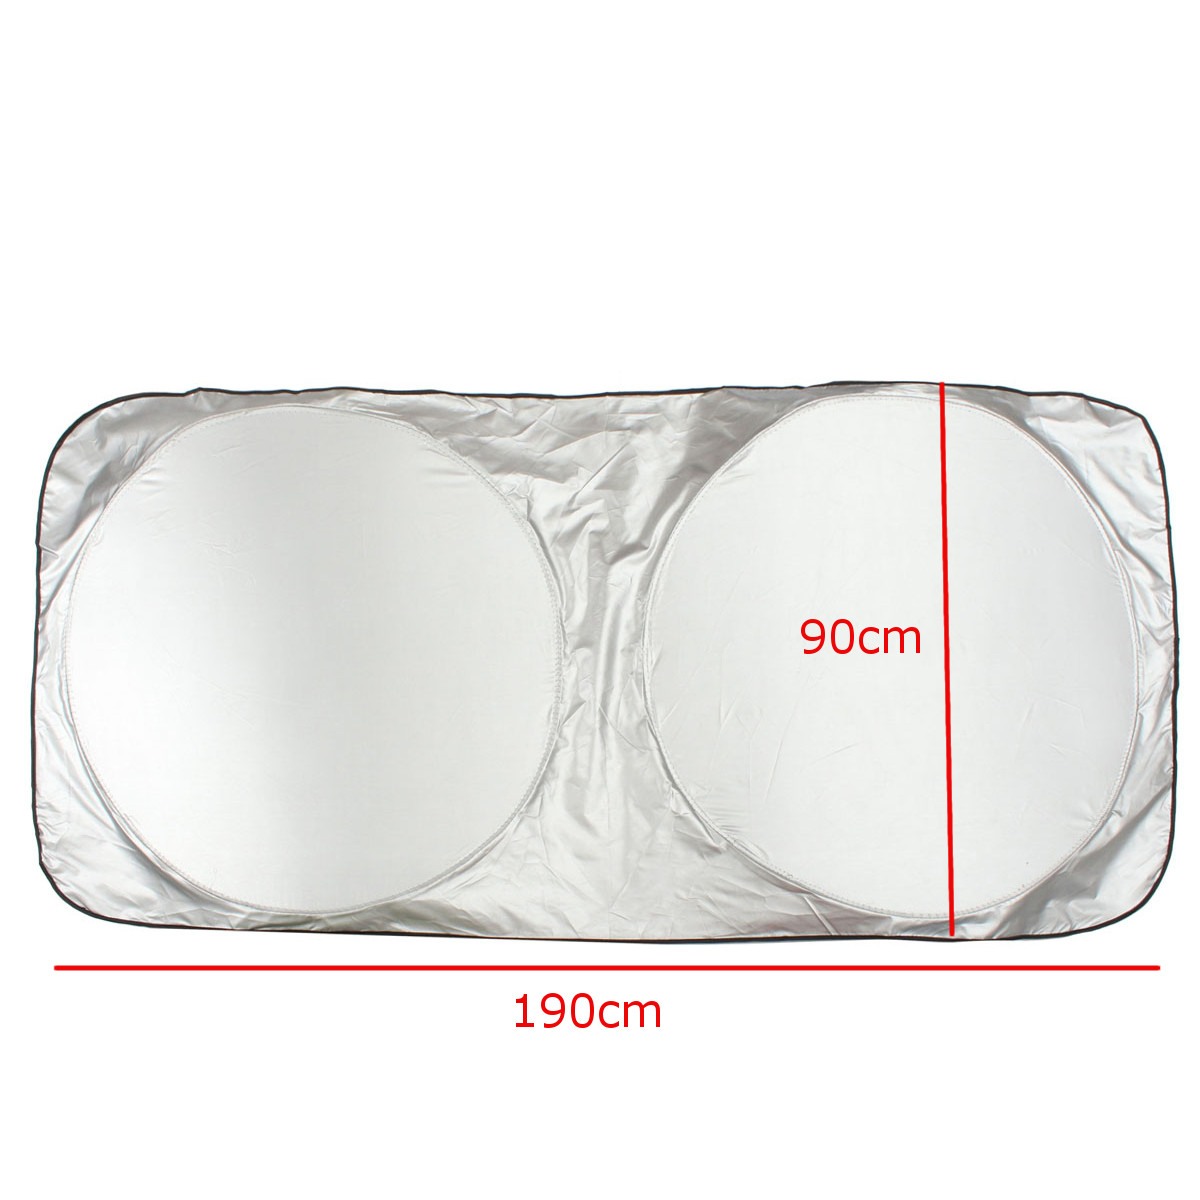 190x90cm Nylon Folding Front Window Sunshade Visor Wind Shield Block Cover for Car Truck